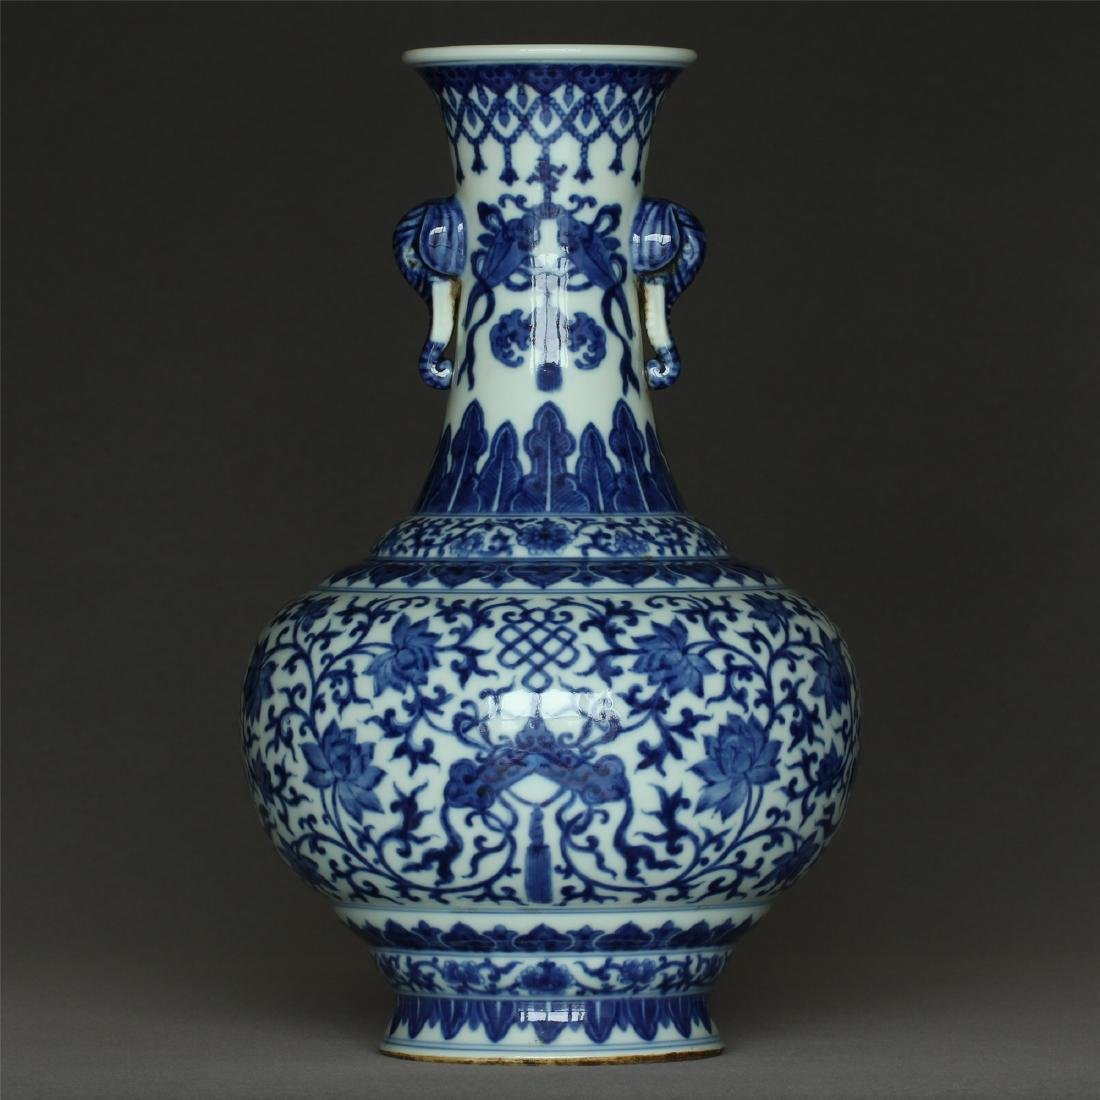 Chinese blue and white porcelain vase of Qing Dynasty - 5